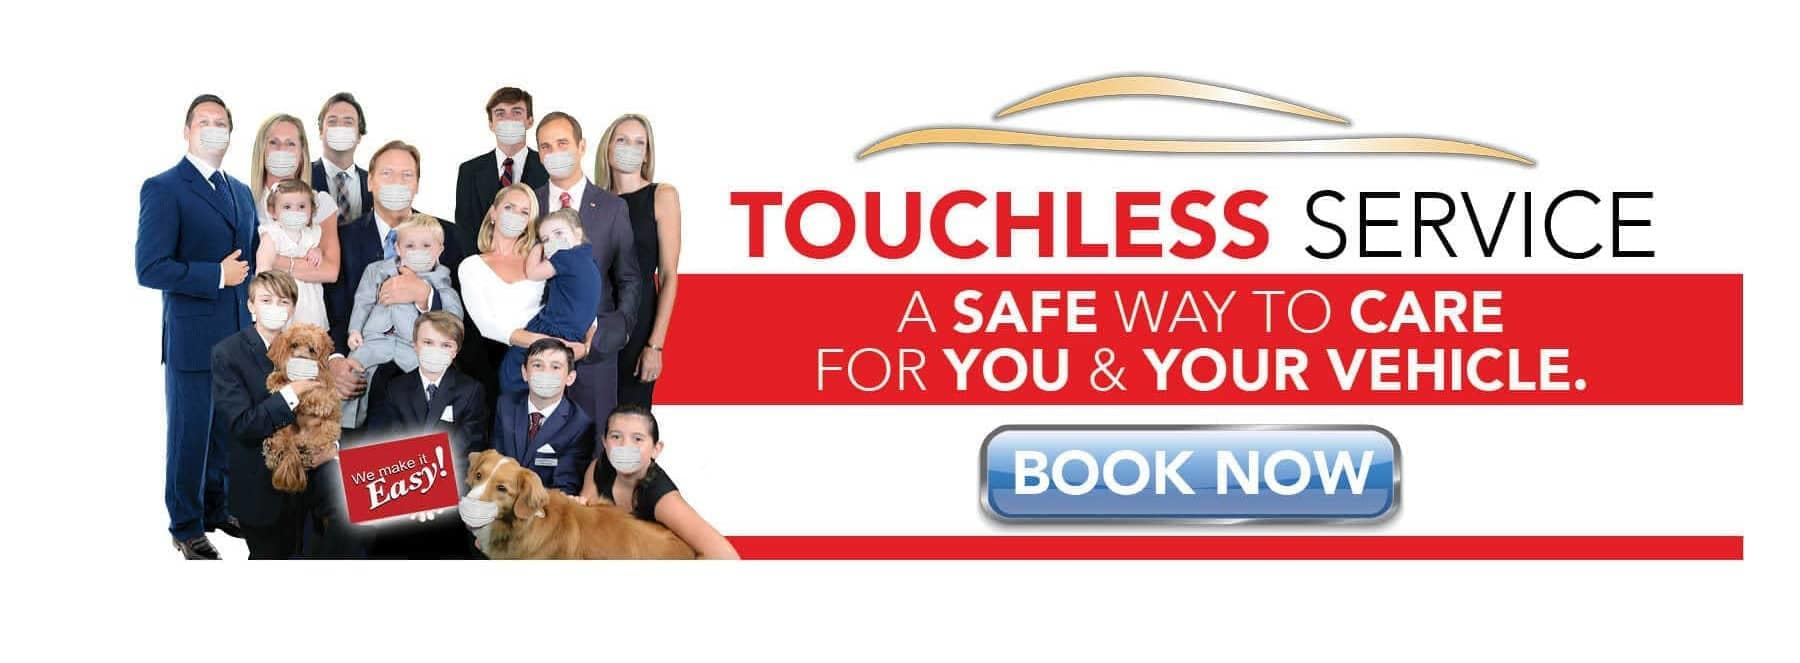 Kelly touchless service banner small